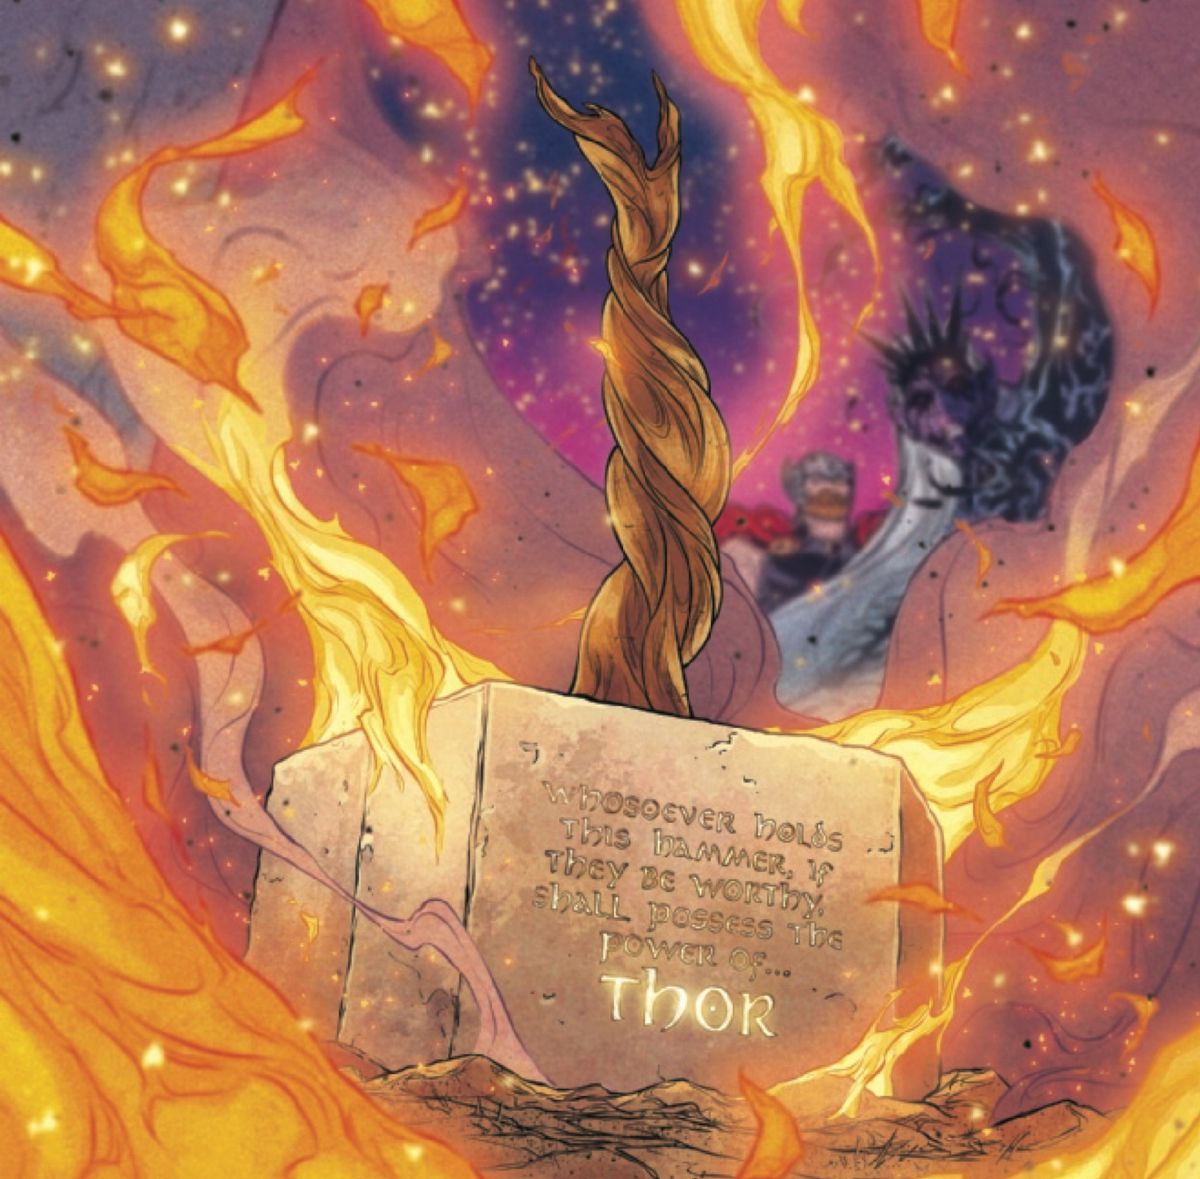 Mjolnir reforged in The War of the Realms #6, Marvel Comics (2019).